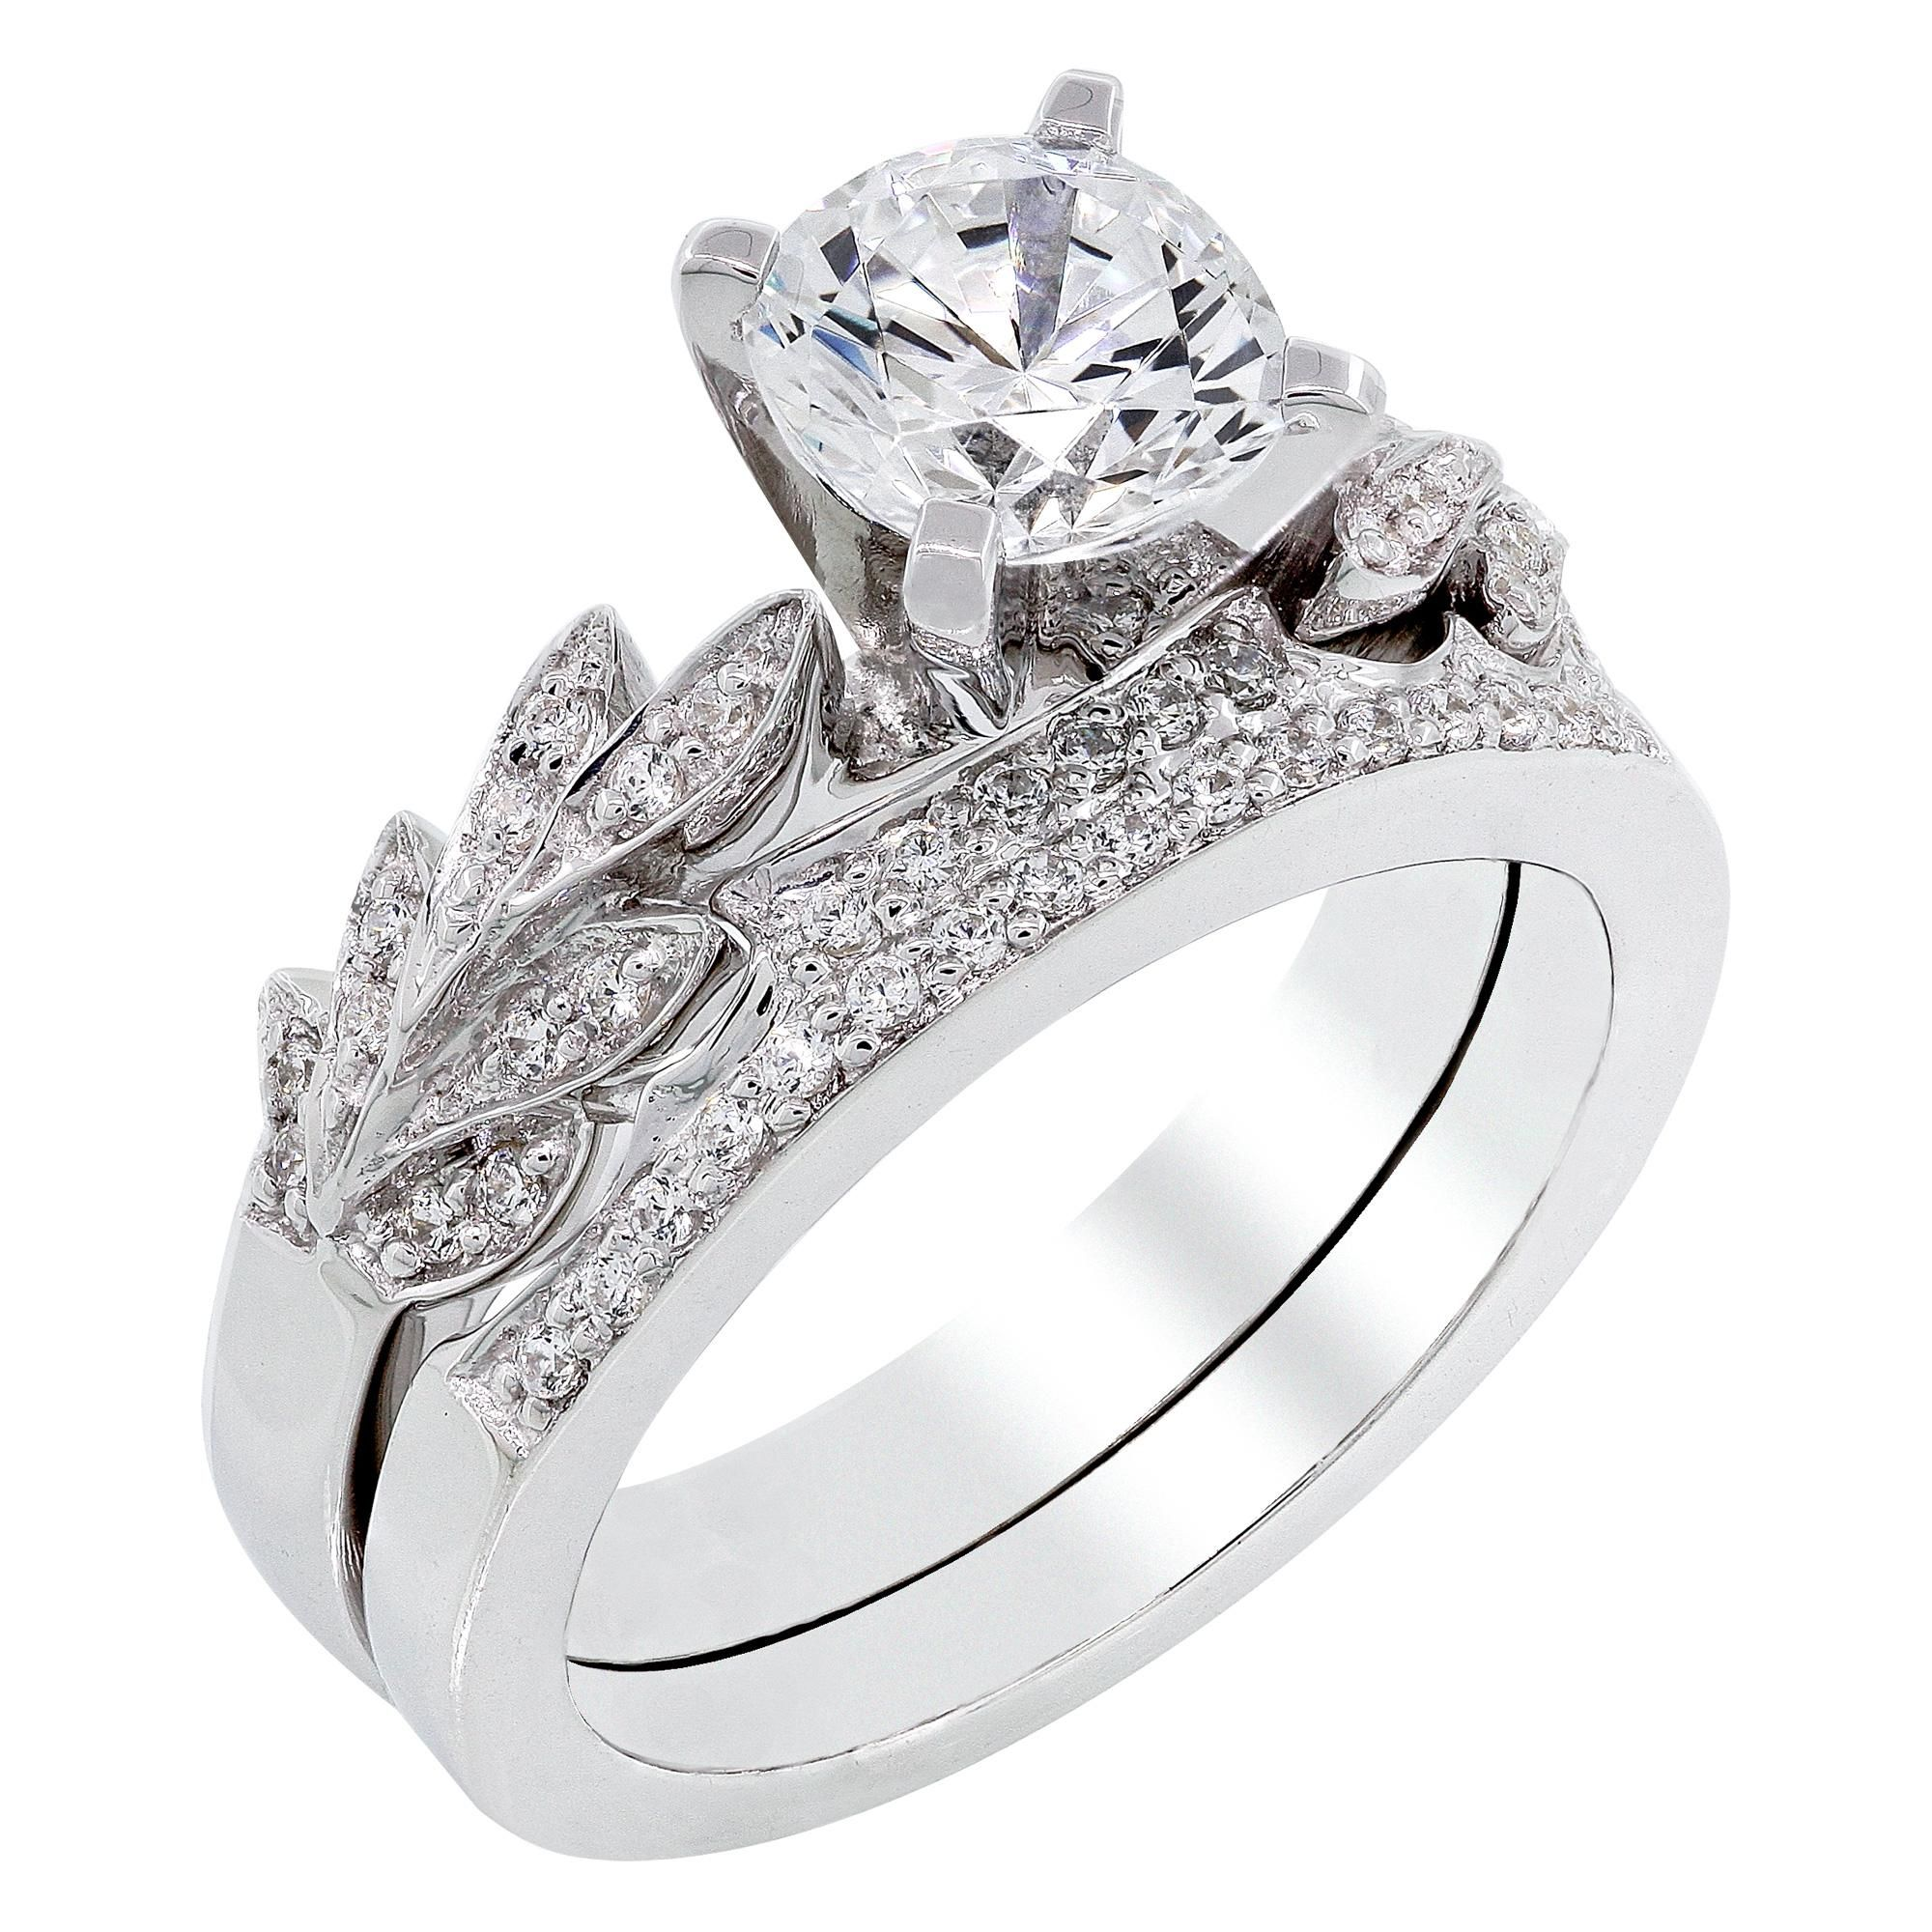 images sets wedding cheap ring idea attachment luxury elegant rings diamond public engagement jewellery